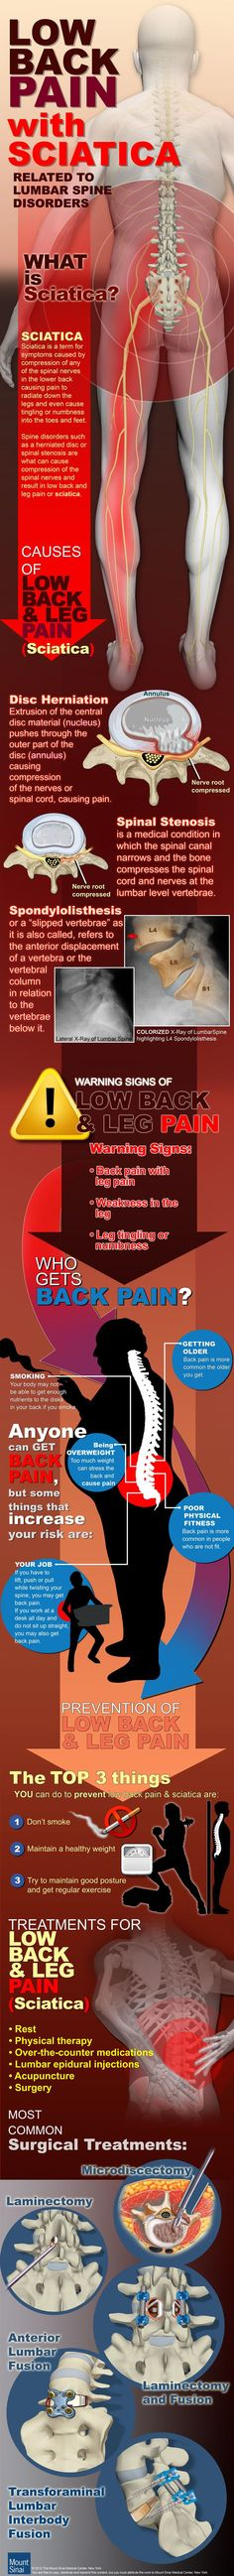 Low Back Pain with Sciatica